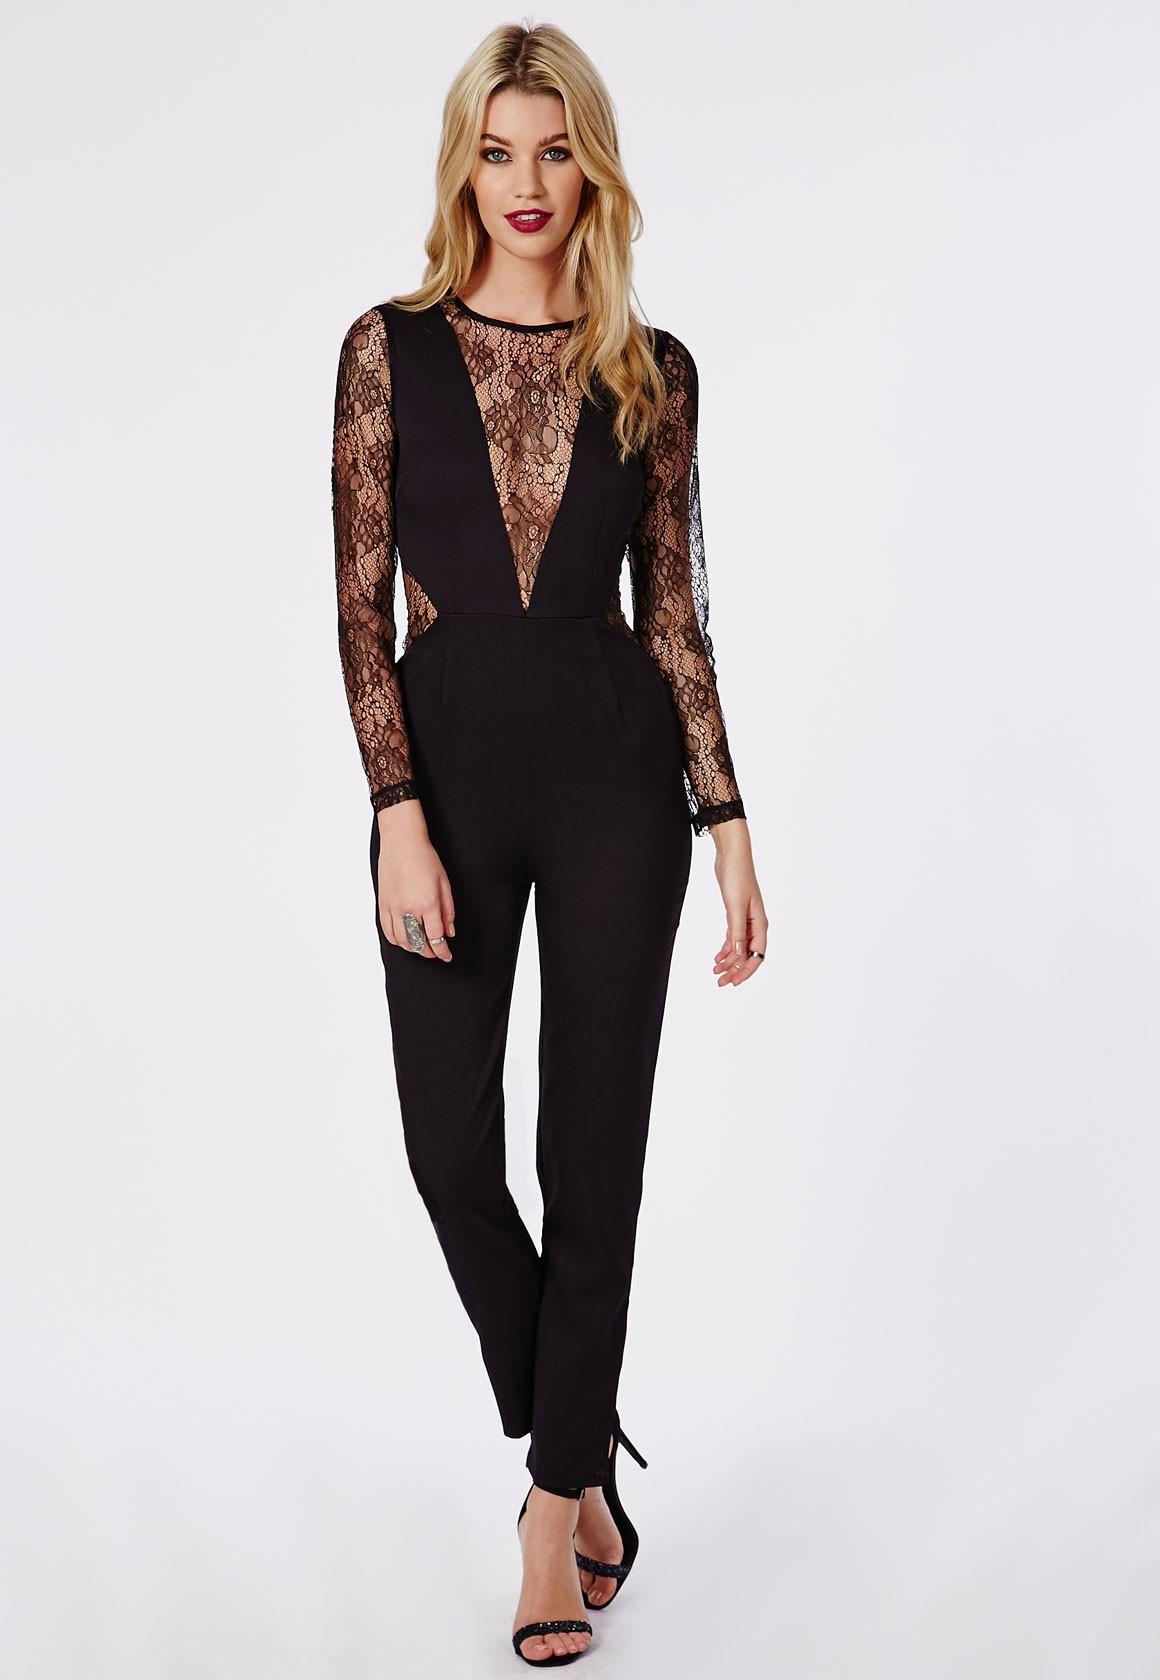 How to Wear Black Lace Jumpsuit